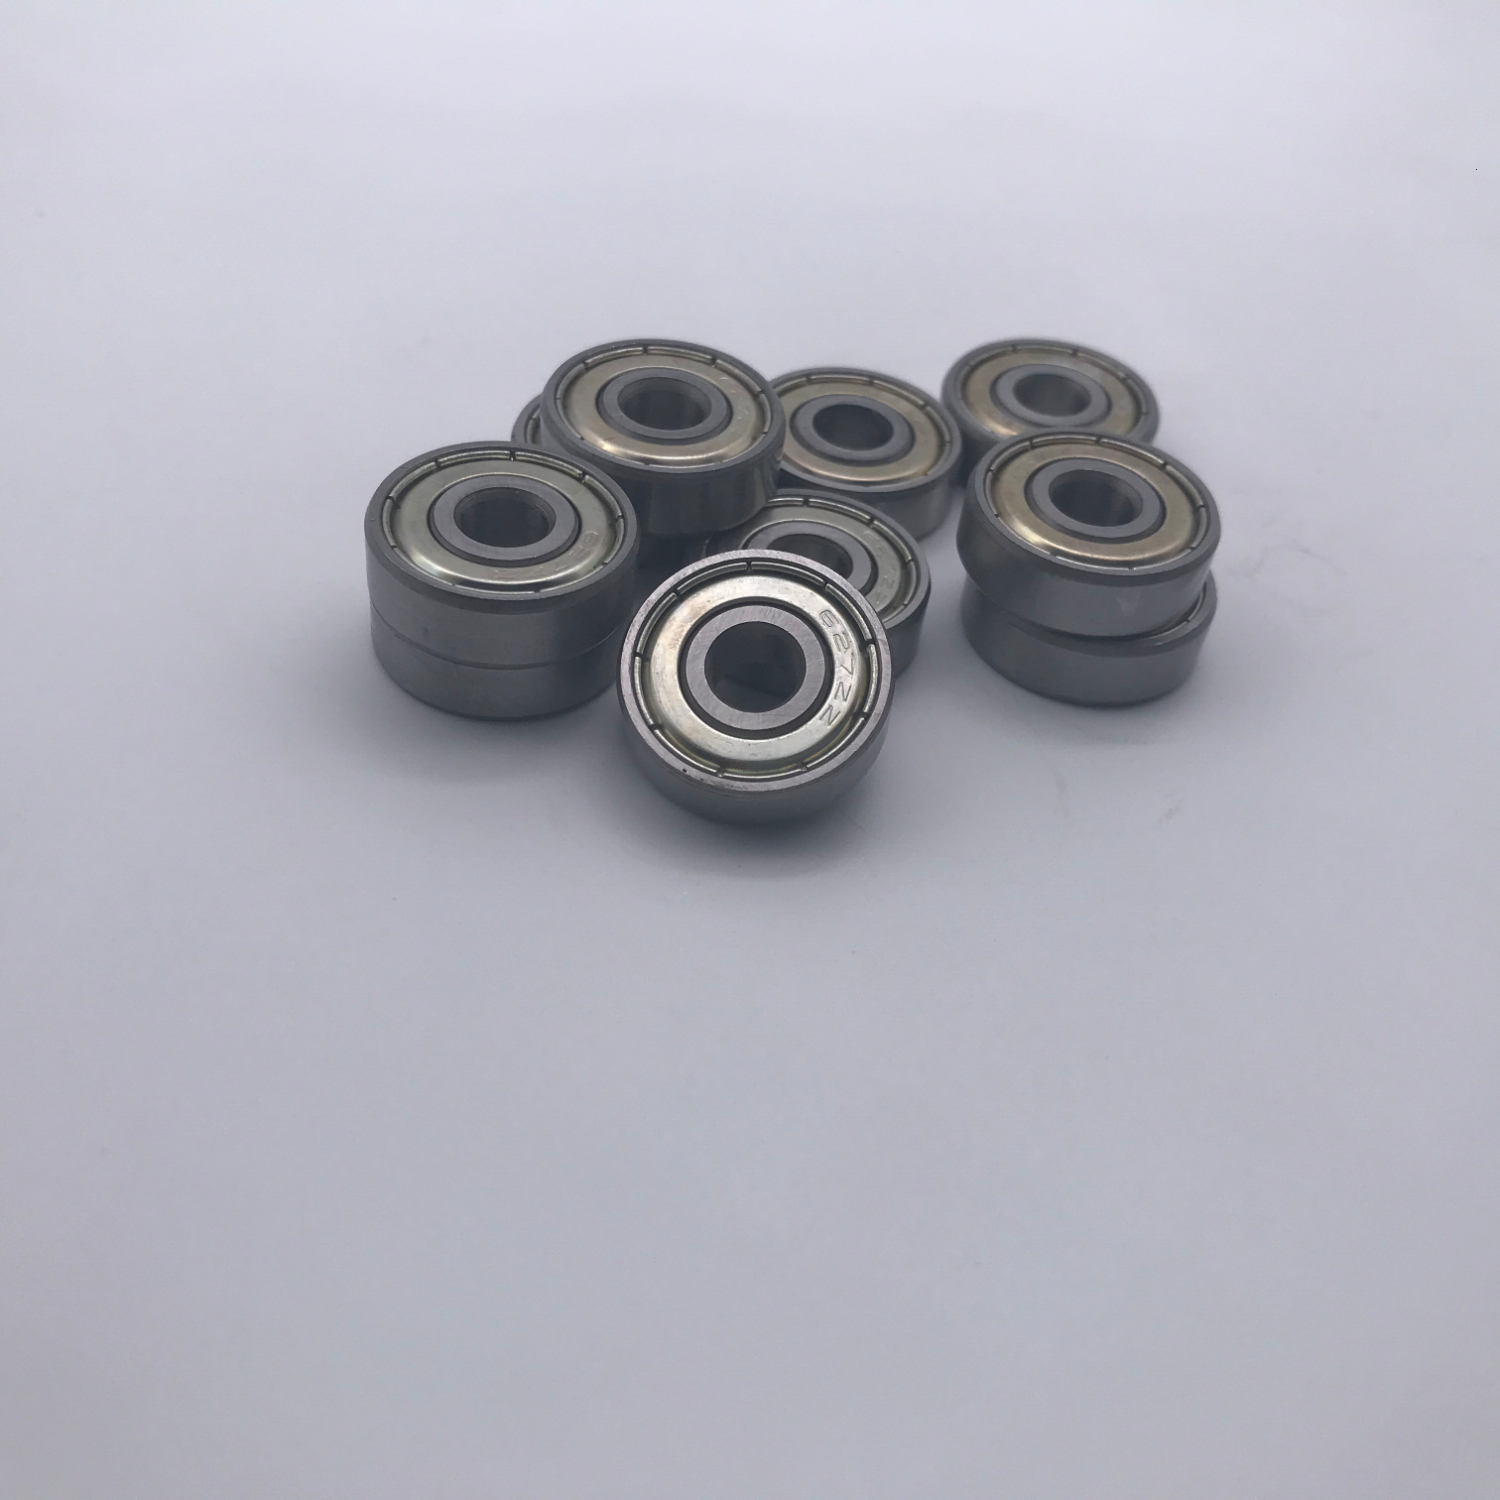 10pcs/lot 627ZZ 627 Deep Groove Ball Bearing 7x22x7 Mm Miniature Bearing 7*22*7  Bearing 6.35x22x7 6.35*22*7